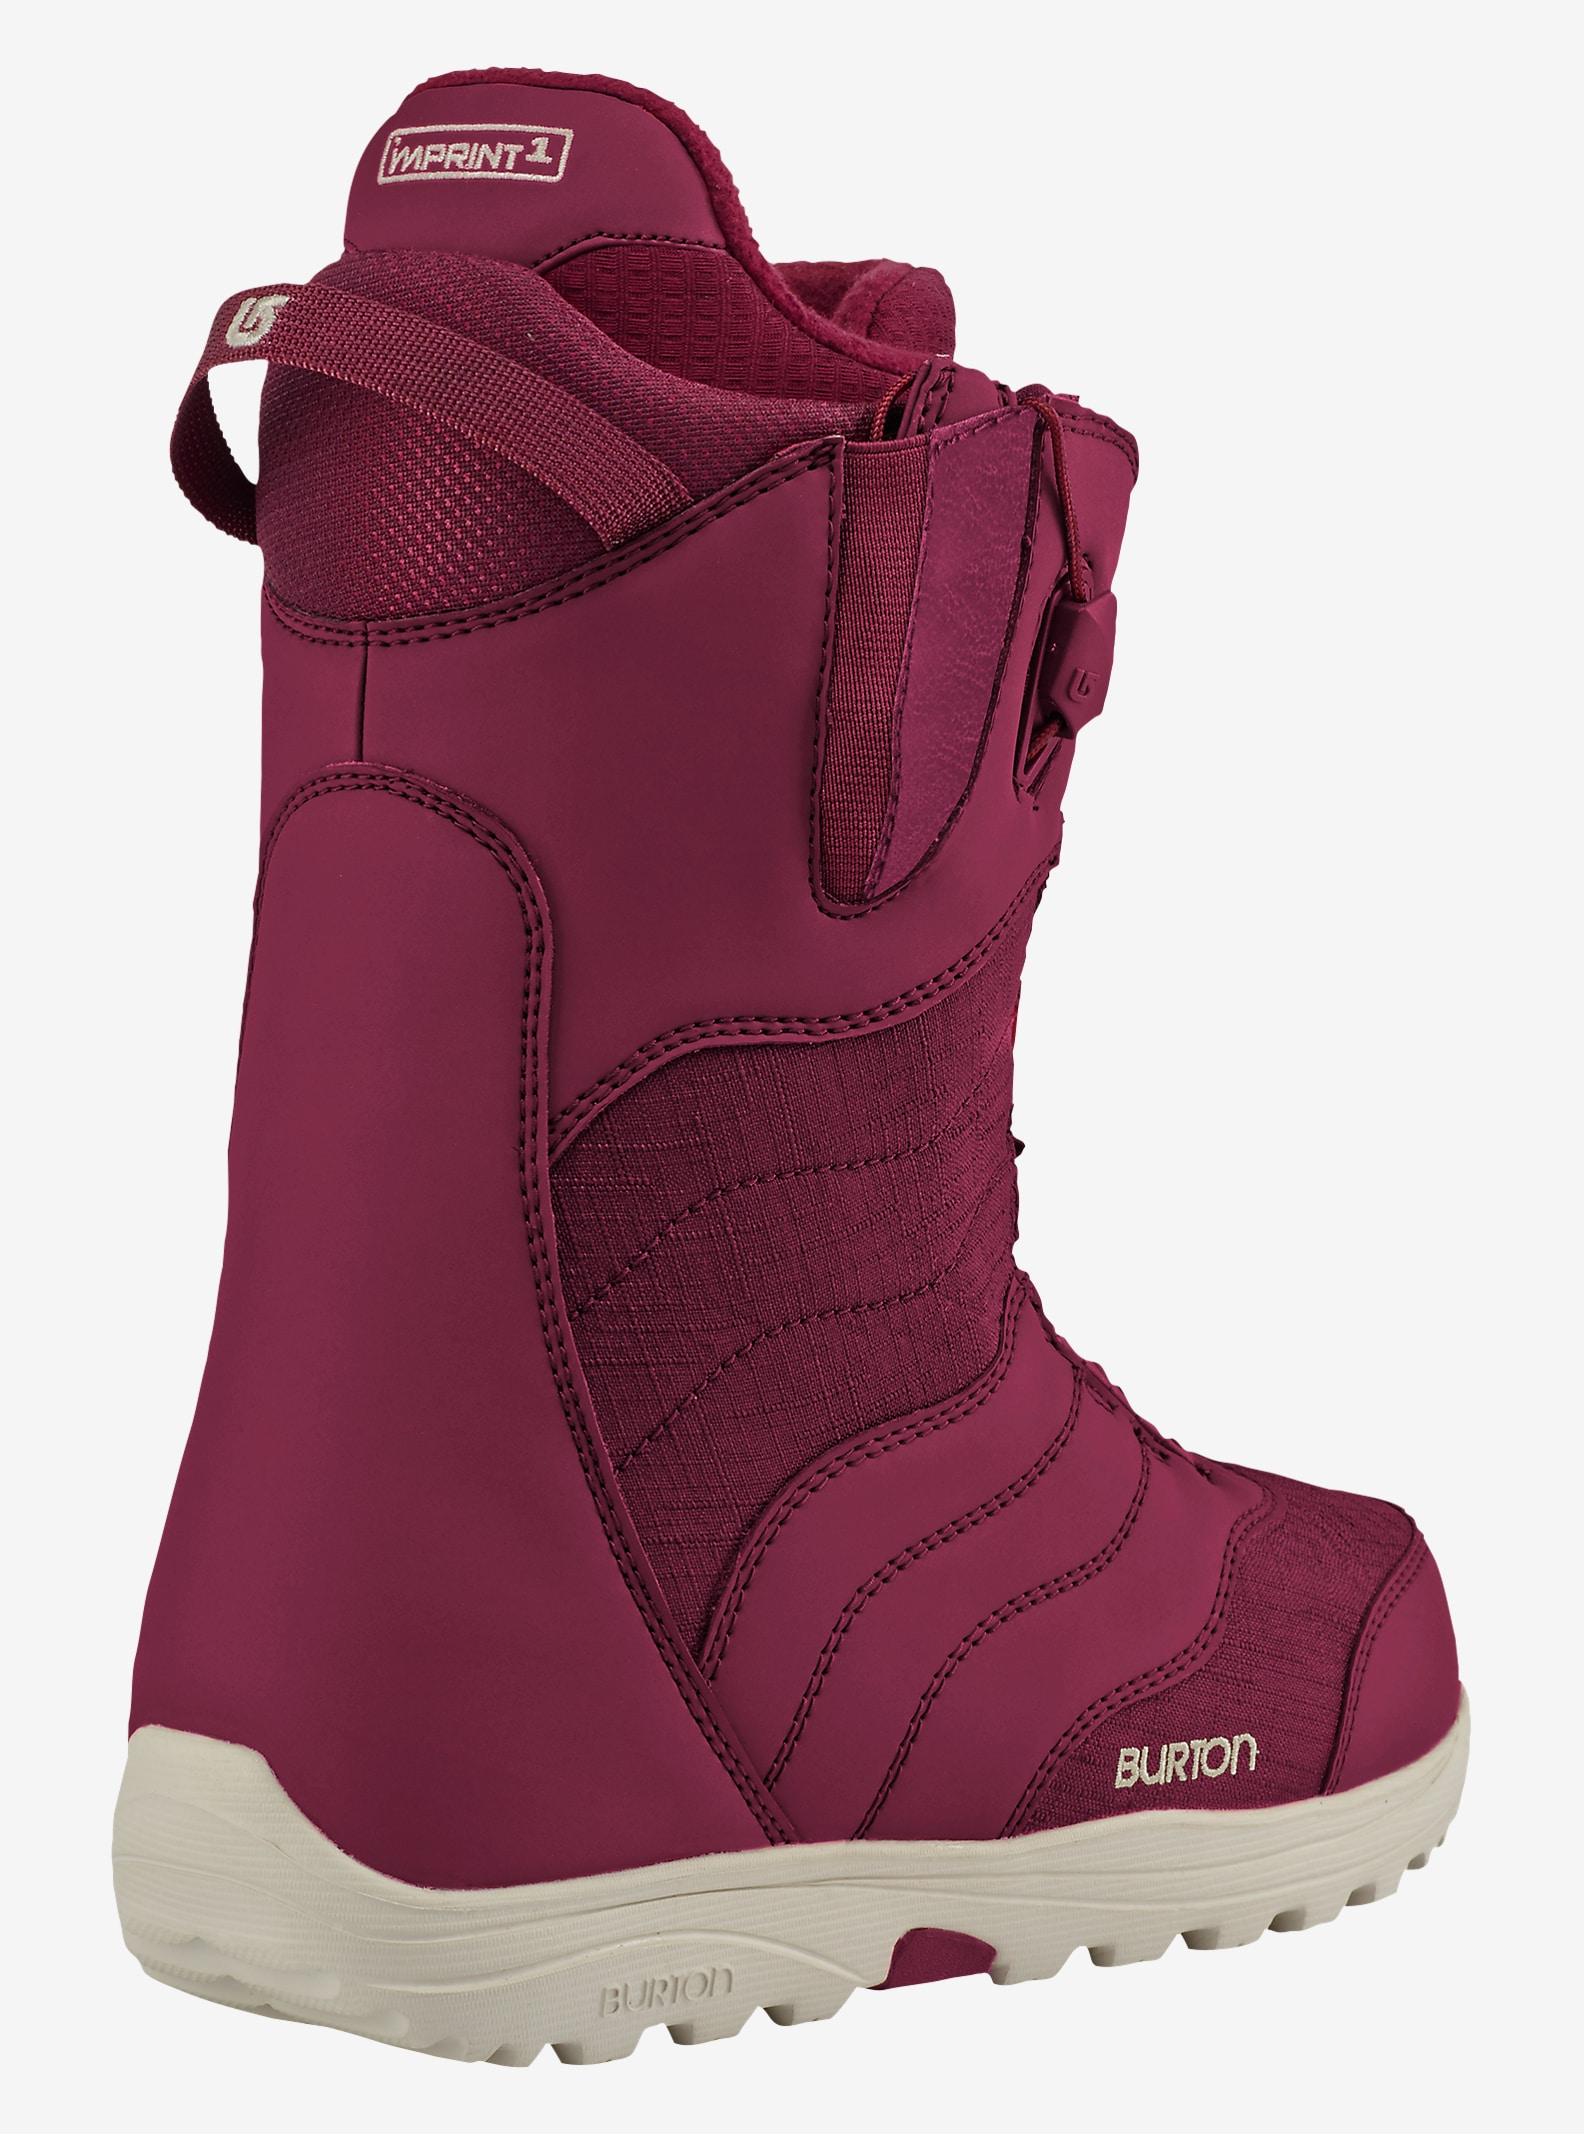 Burton Mint Snowboard Boot shown in Cabernet